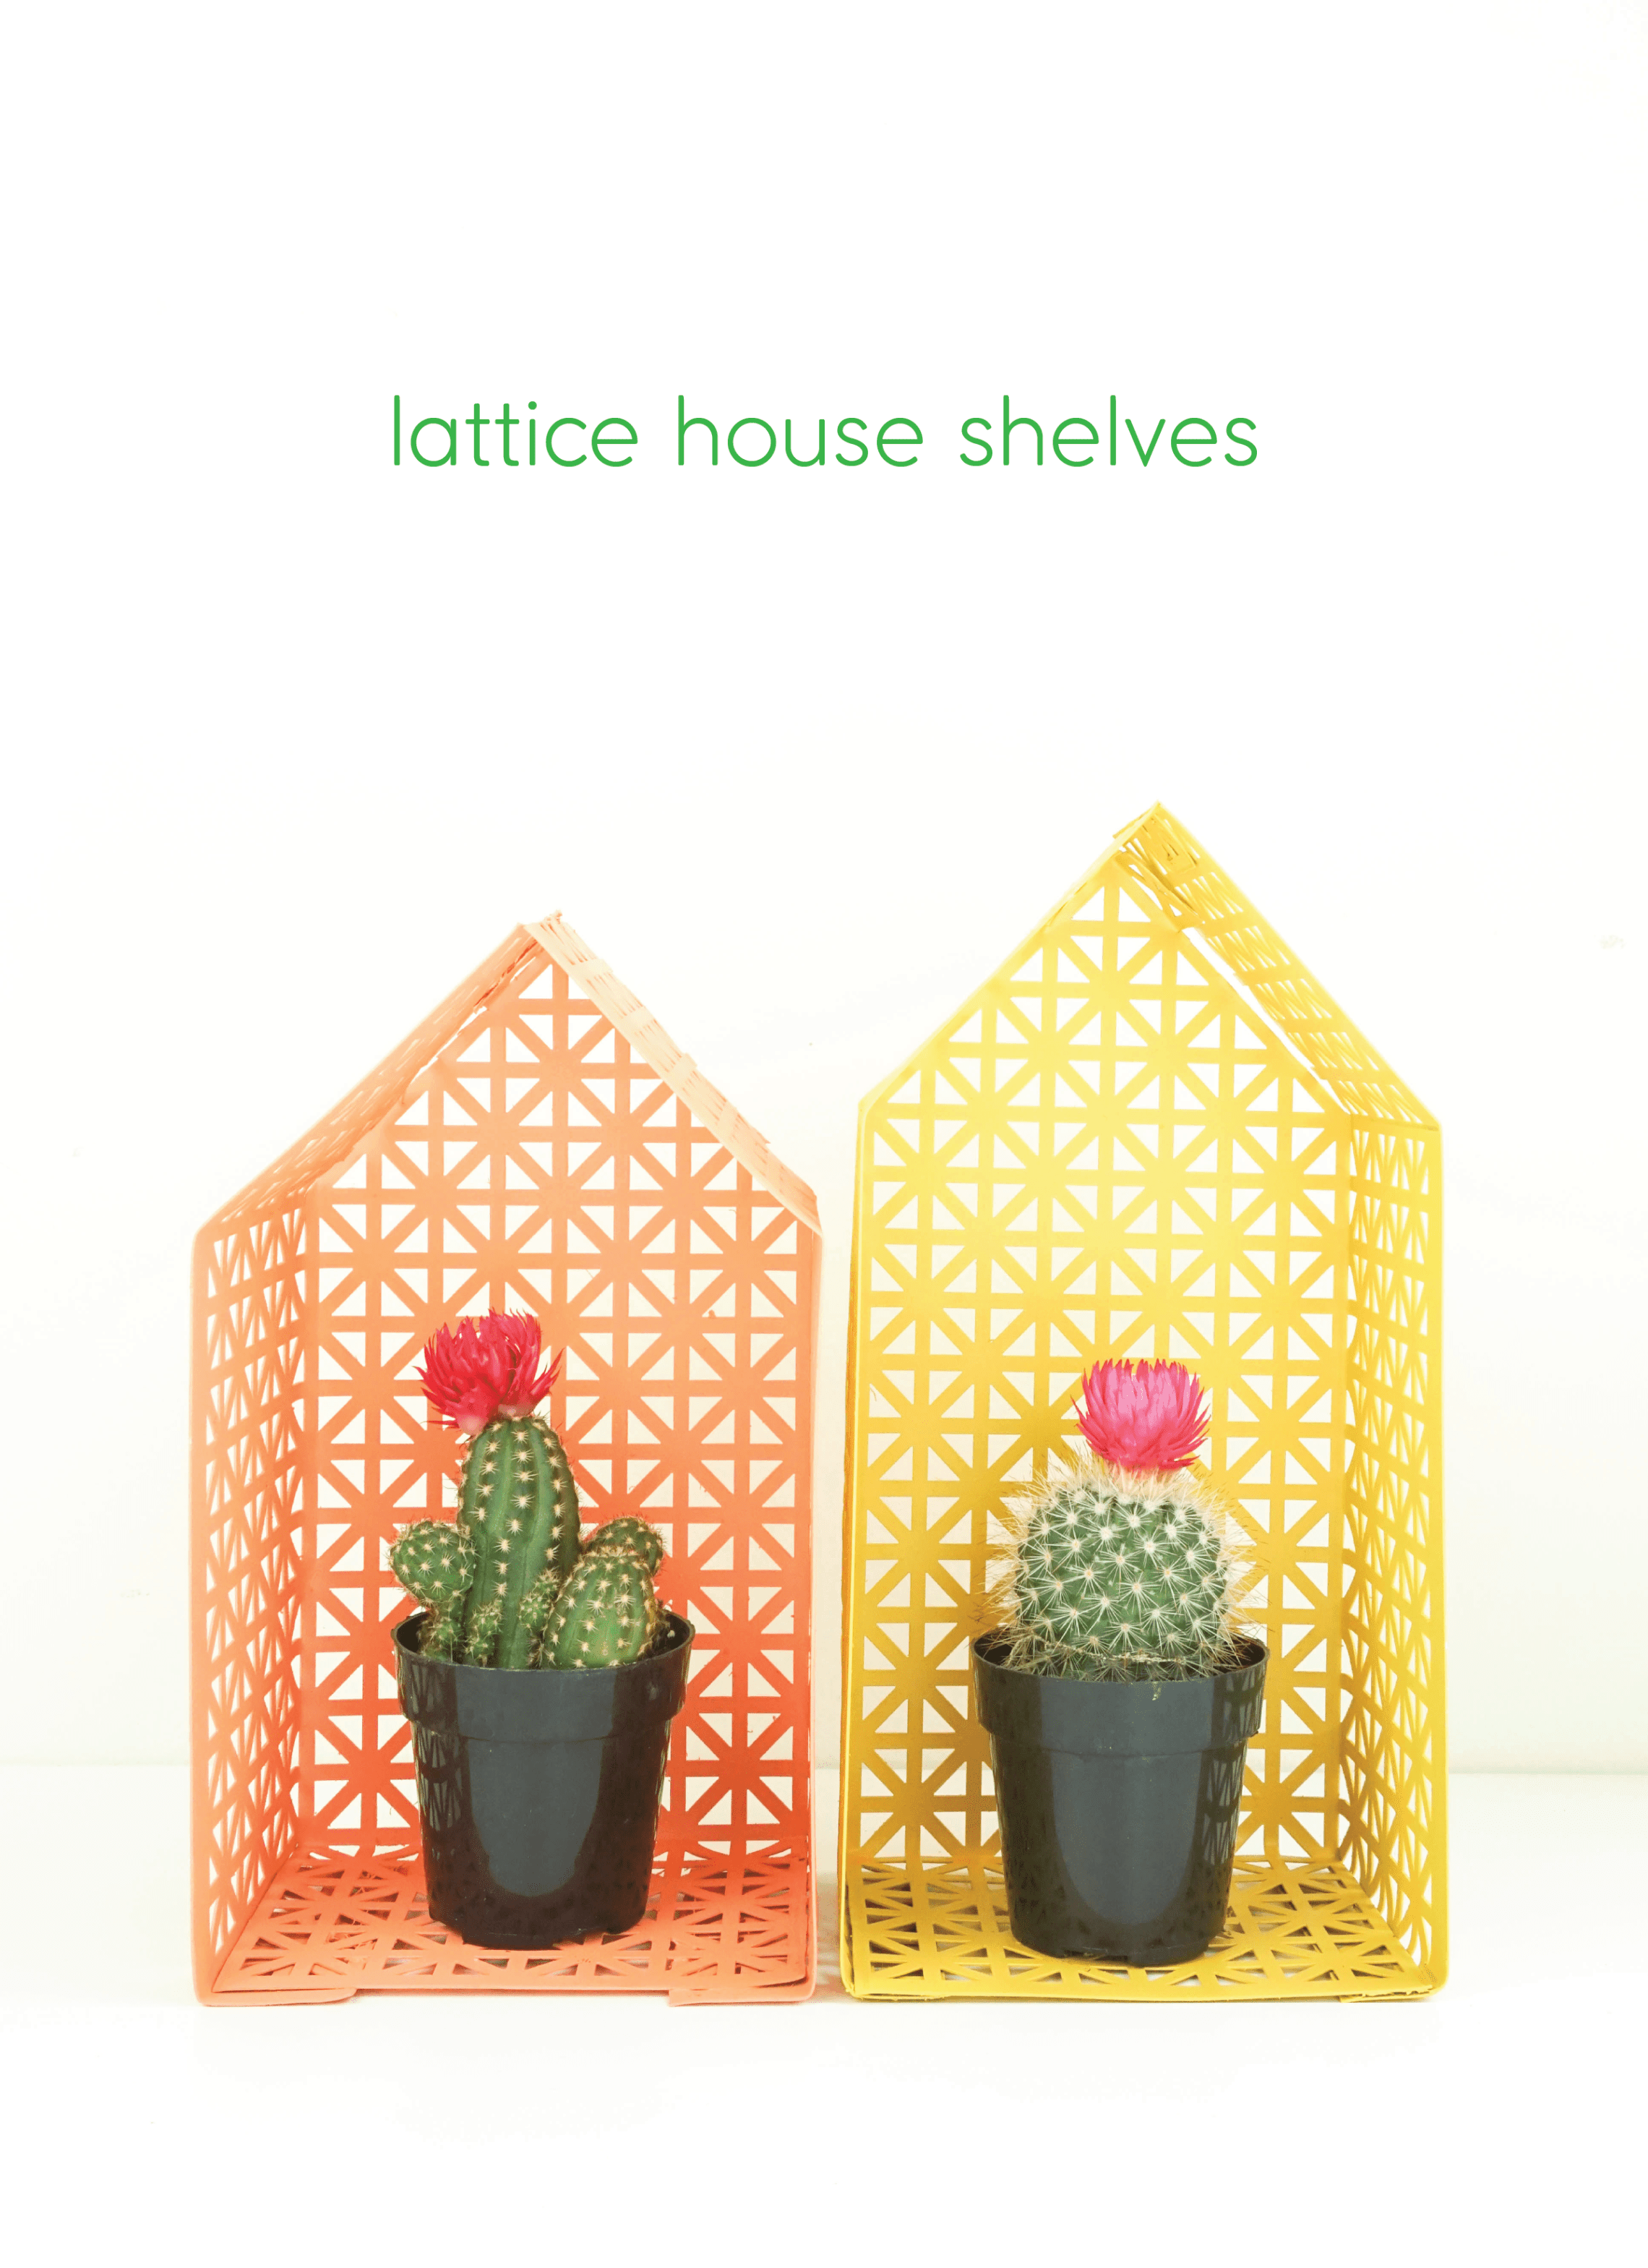 Lattice house shelves